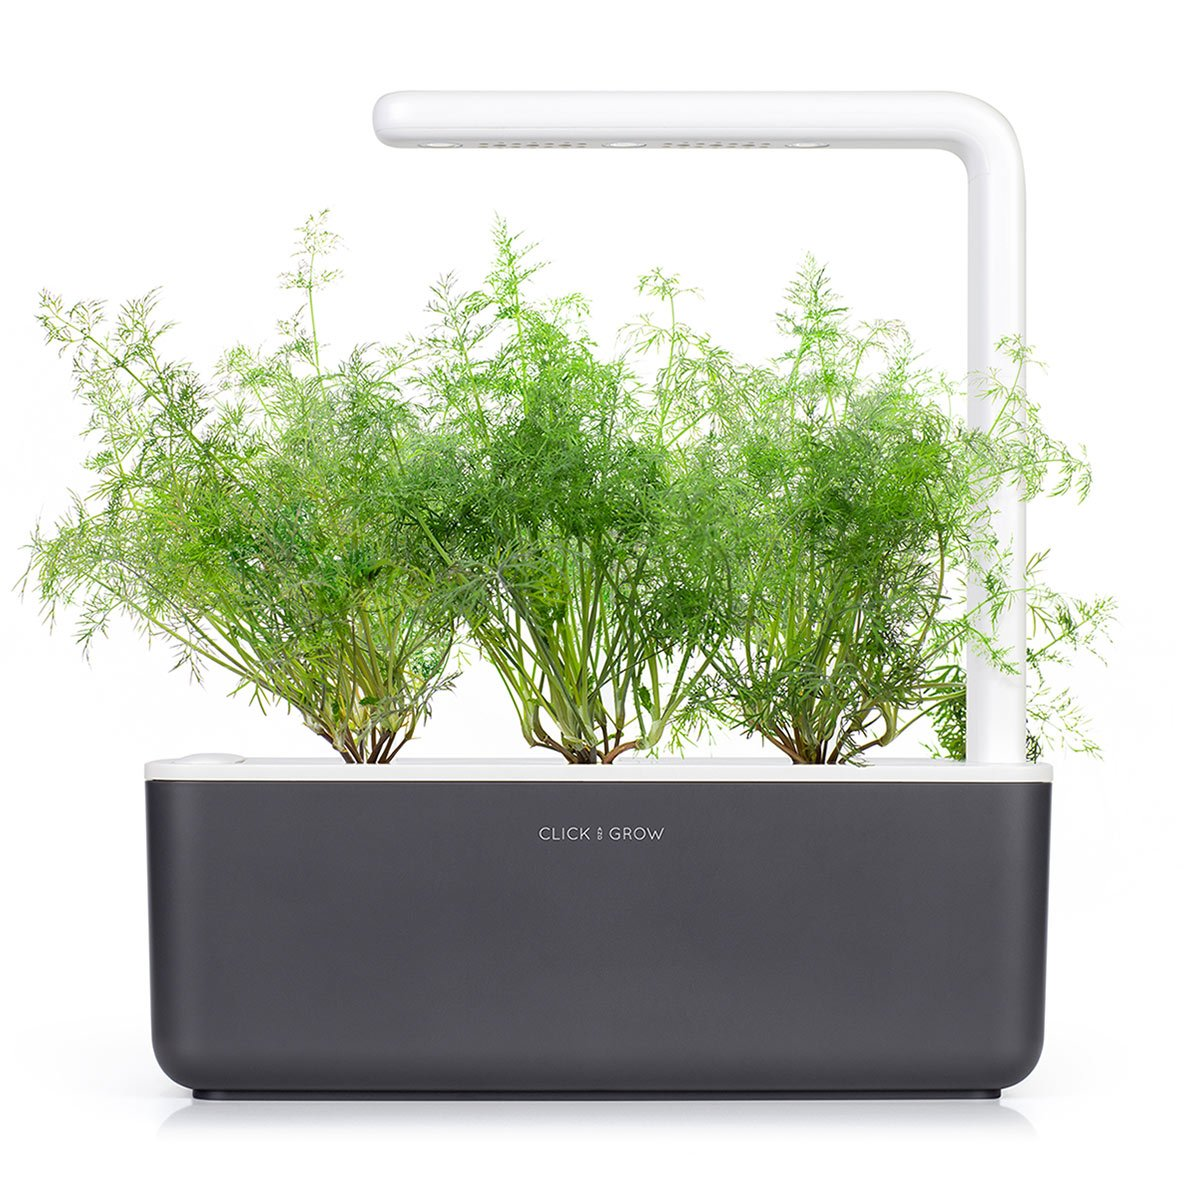 Dill capsule - Click & Grow indoor garden - grow dill at home